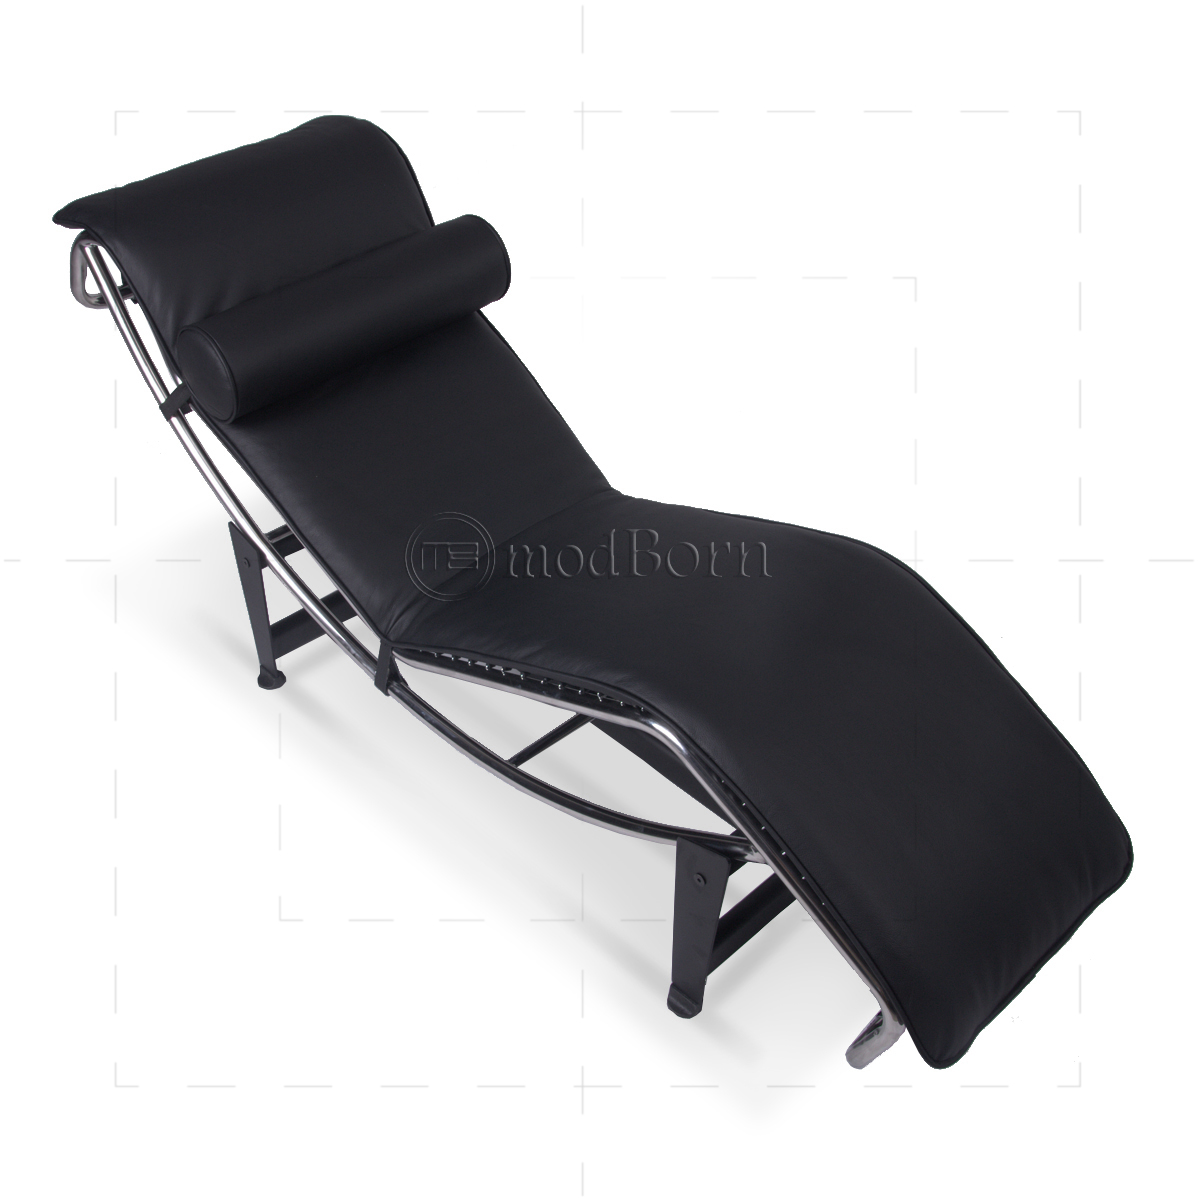 Le corbusier style lc4 chaise longue black leather replica for Black leather chaise longue